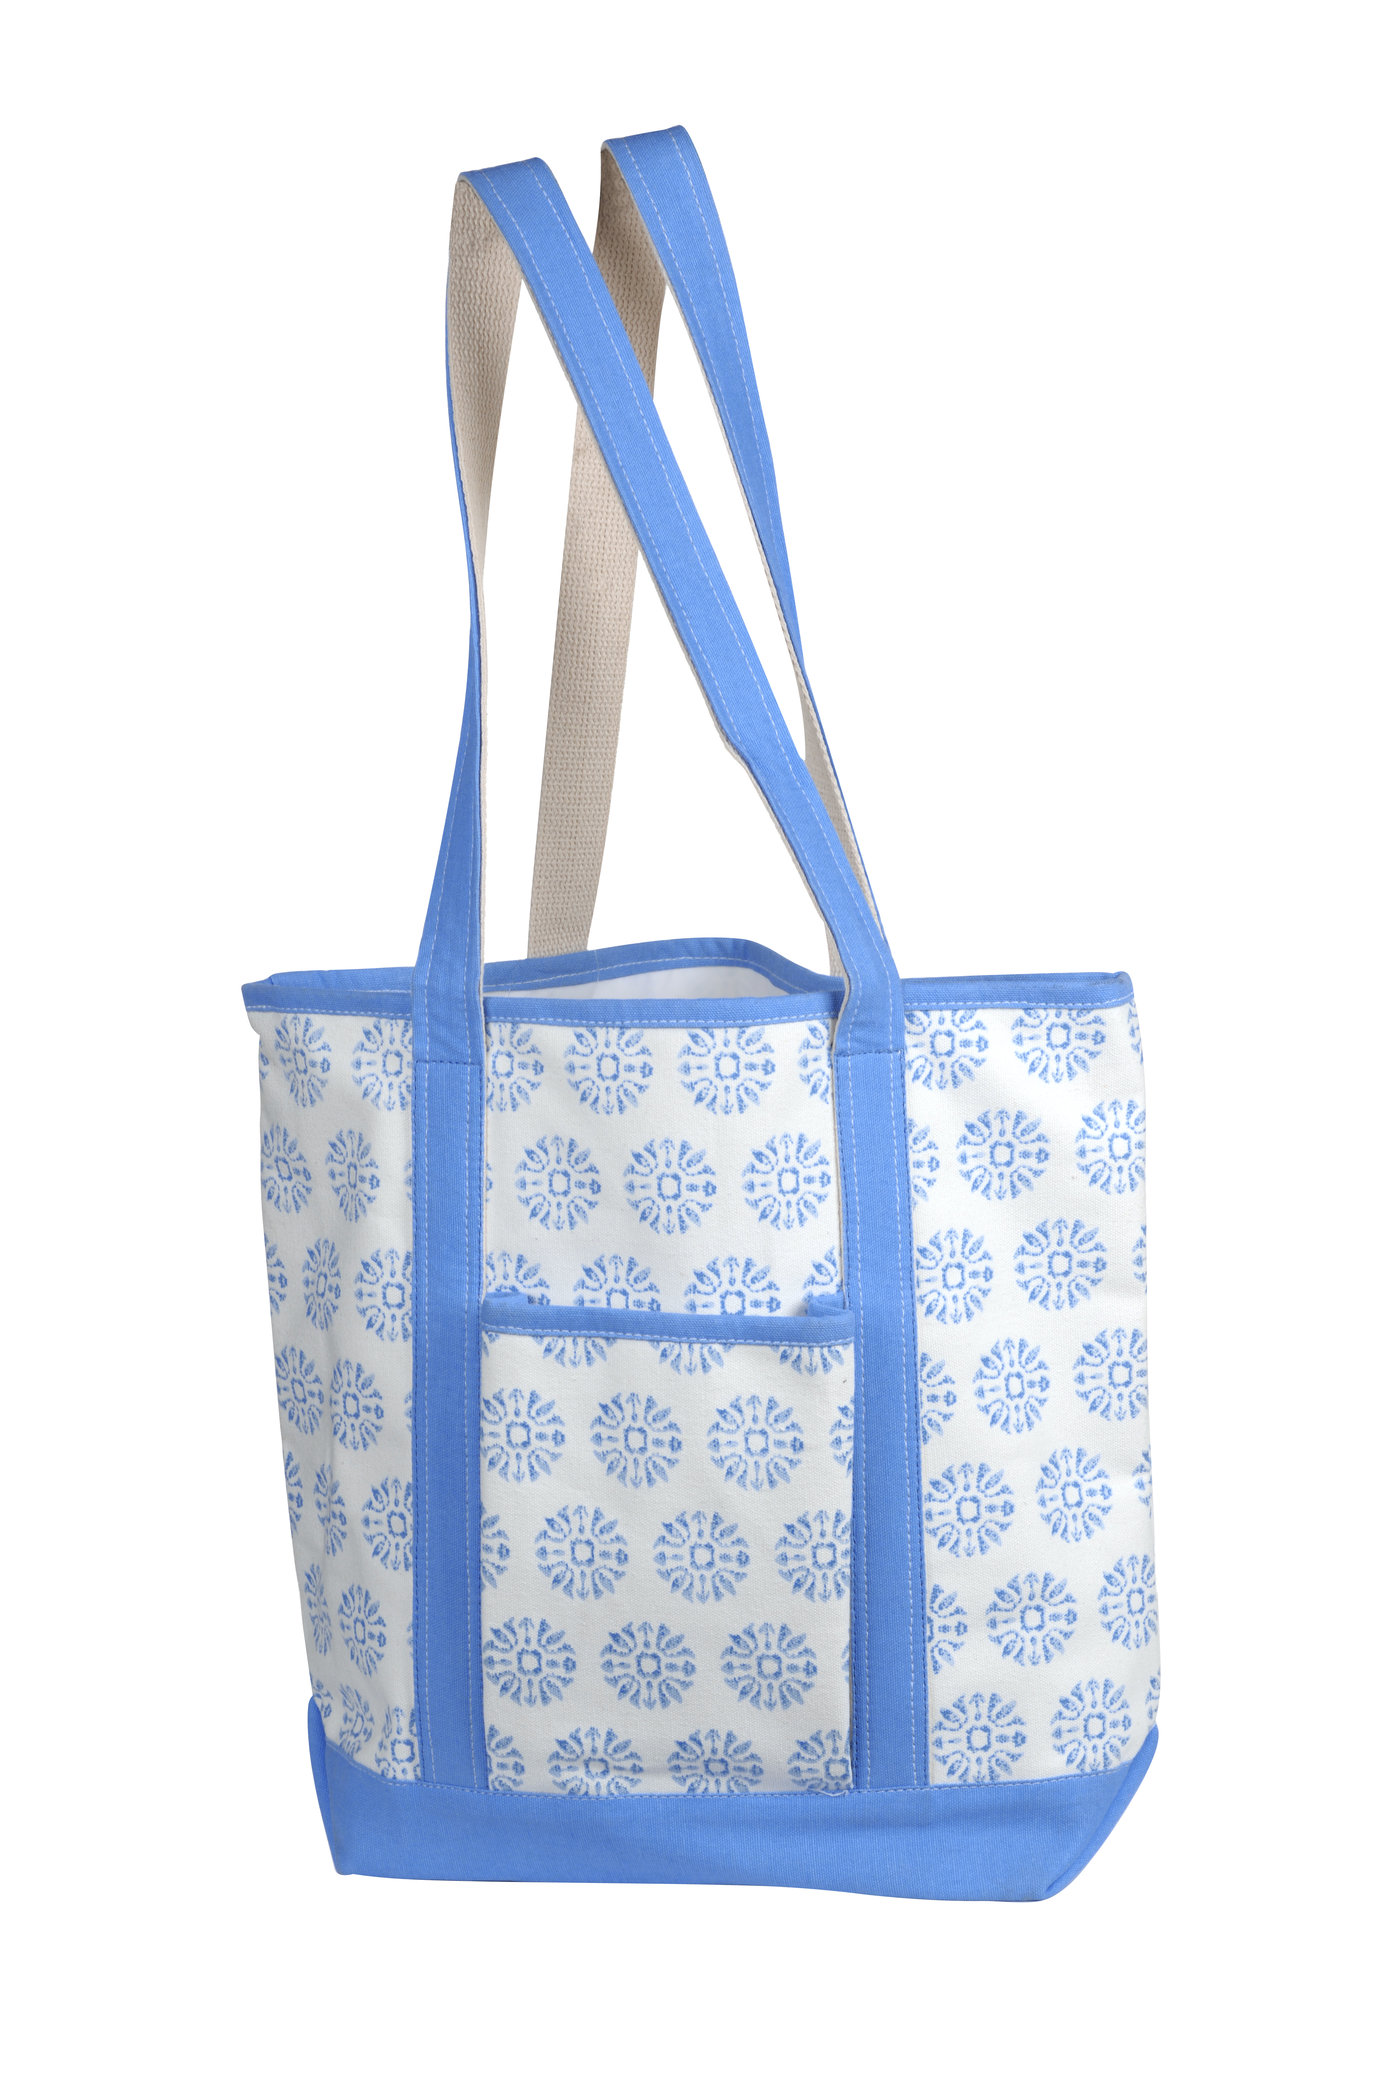 Sophie Conran for Portmeirion Blue Tote Bag image number 0